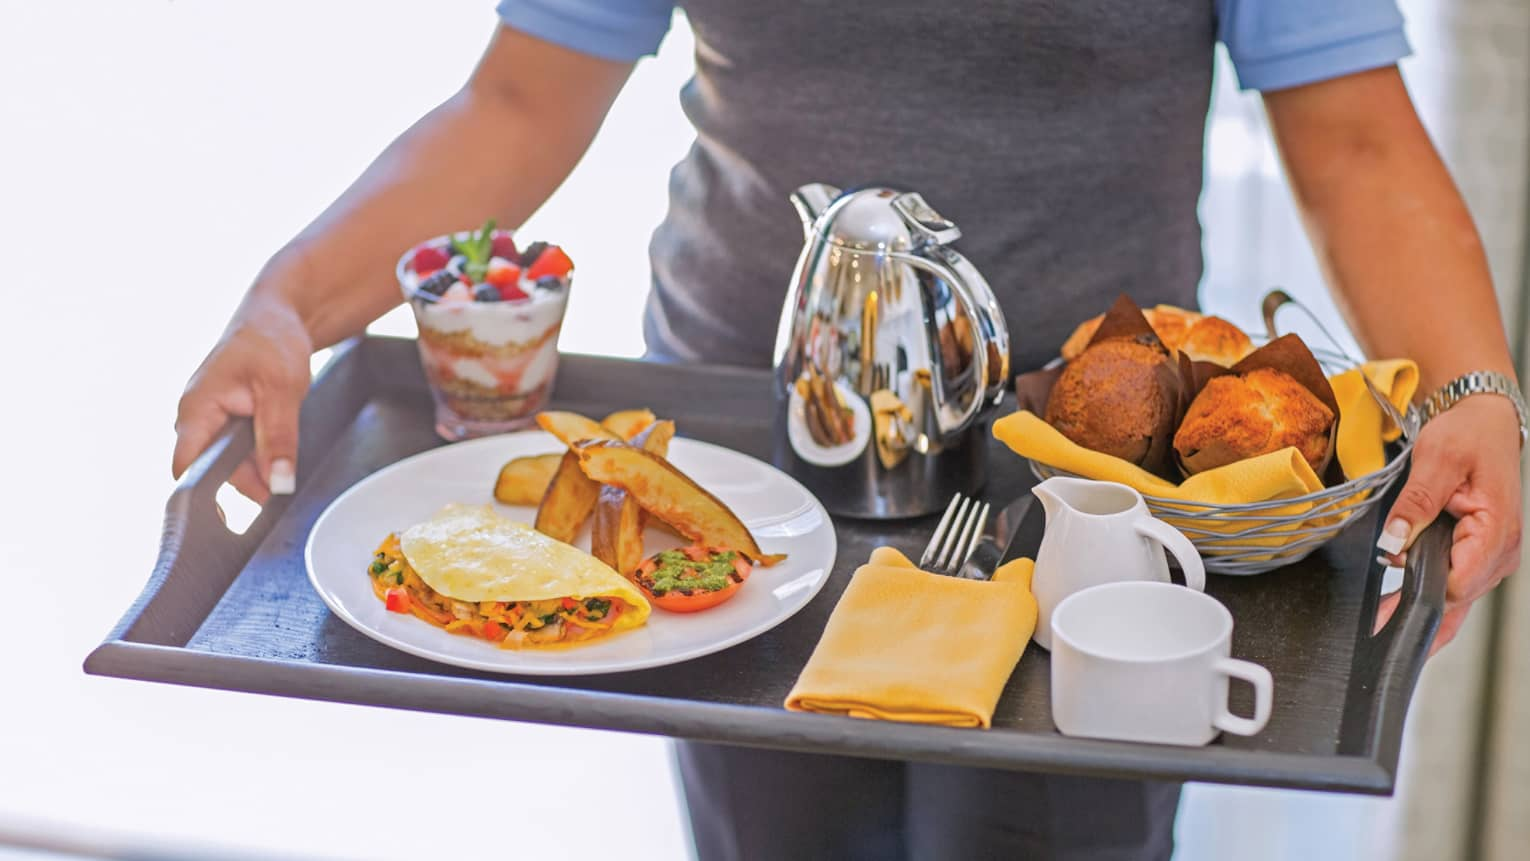 Server carries breakfast tray with omelette, yogurt parfait, basket of muffins, coffee carafe and mugs